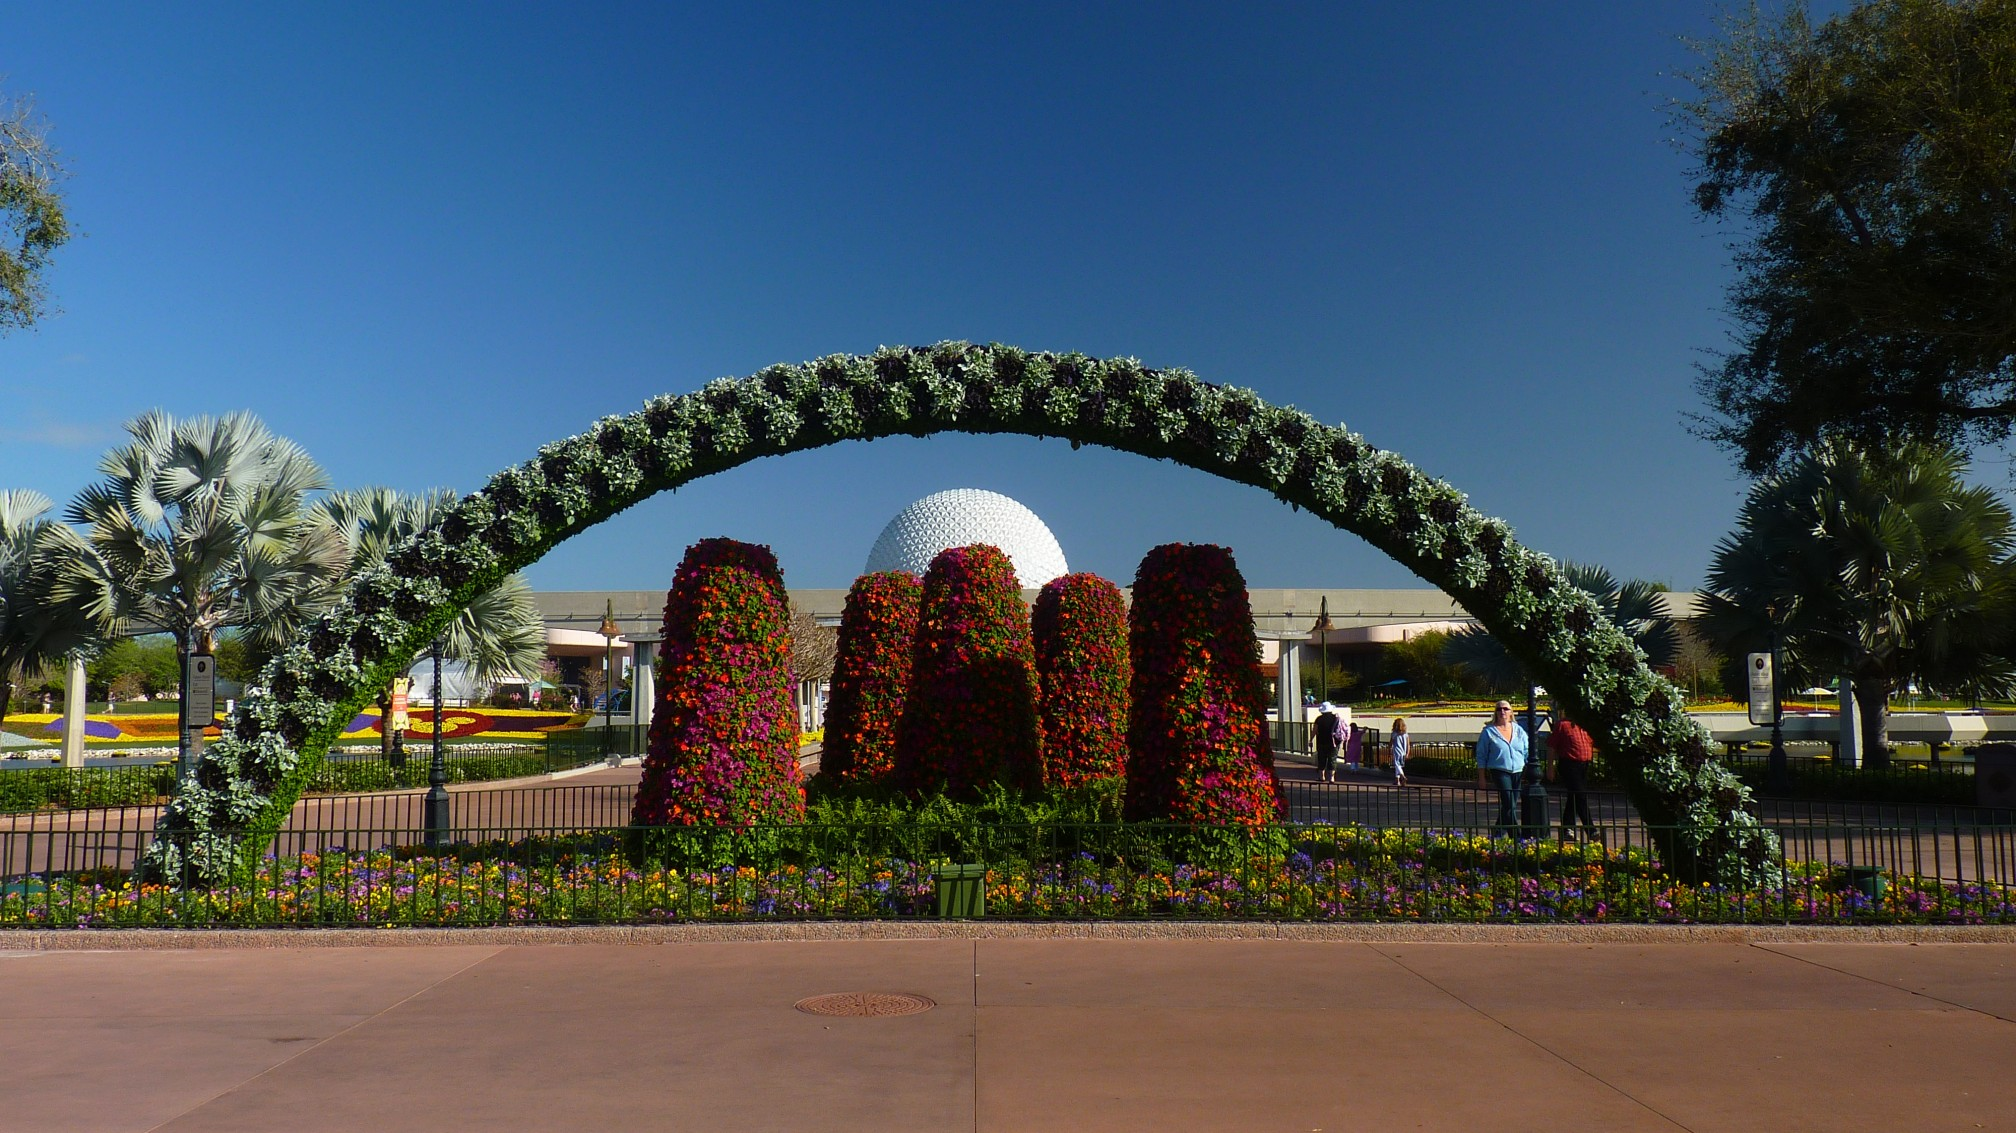 Jud's Disney Picture of the Day: BIG BALL & ARCH